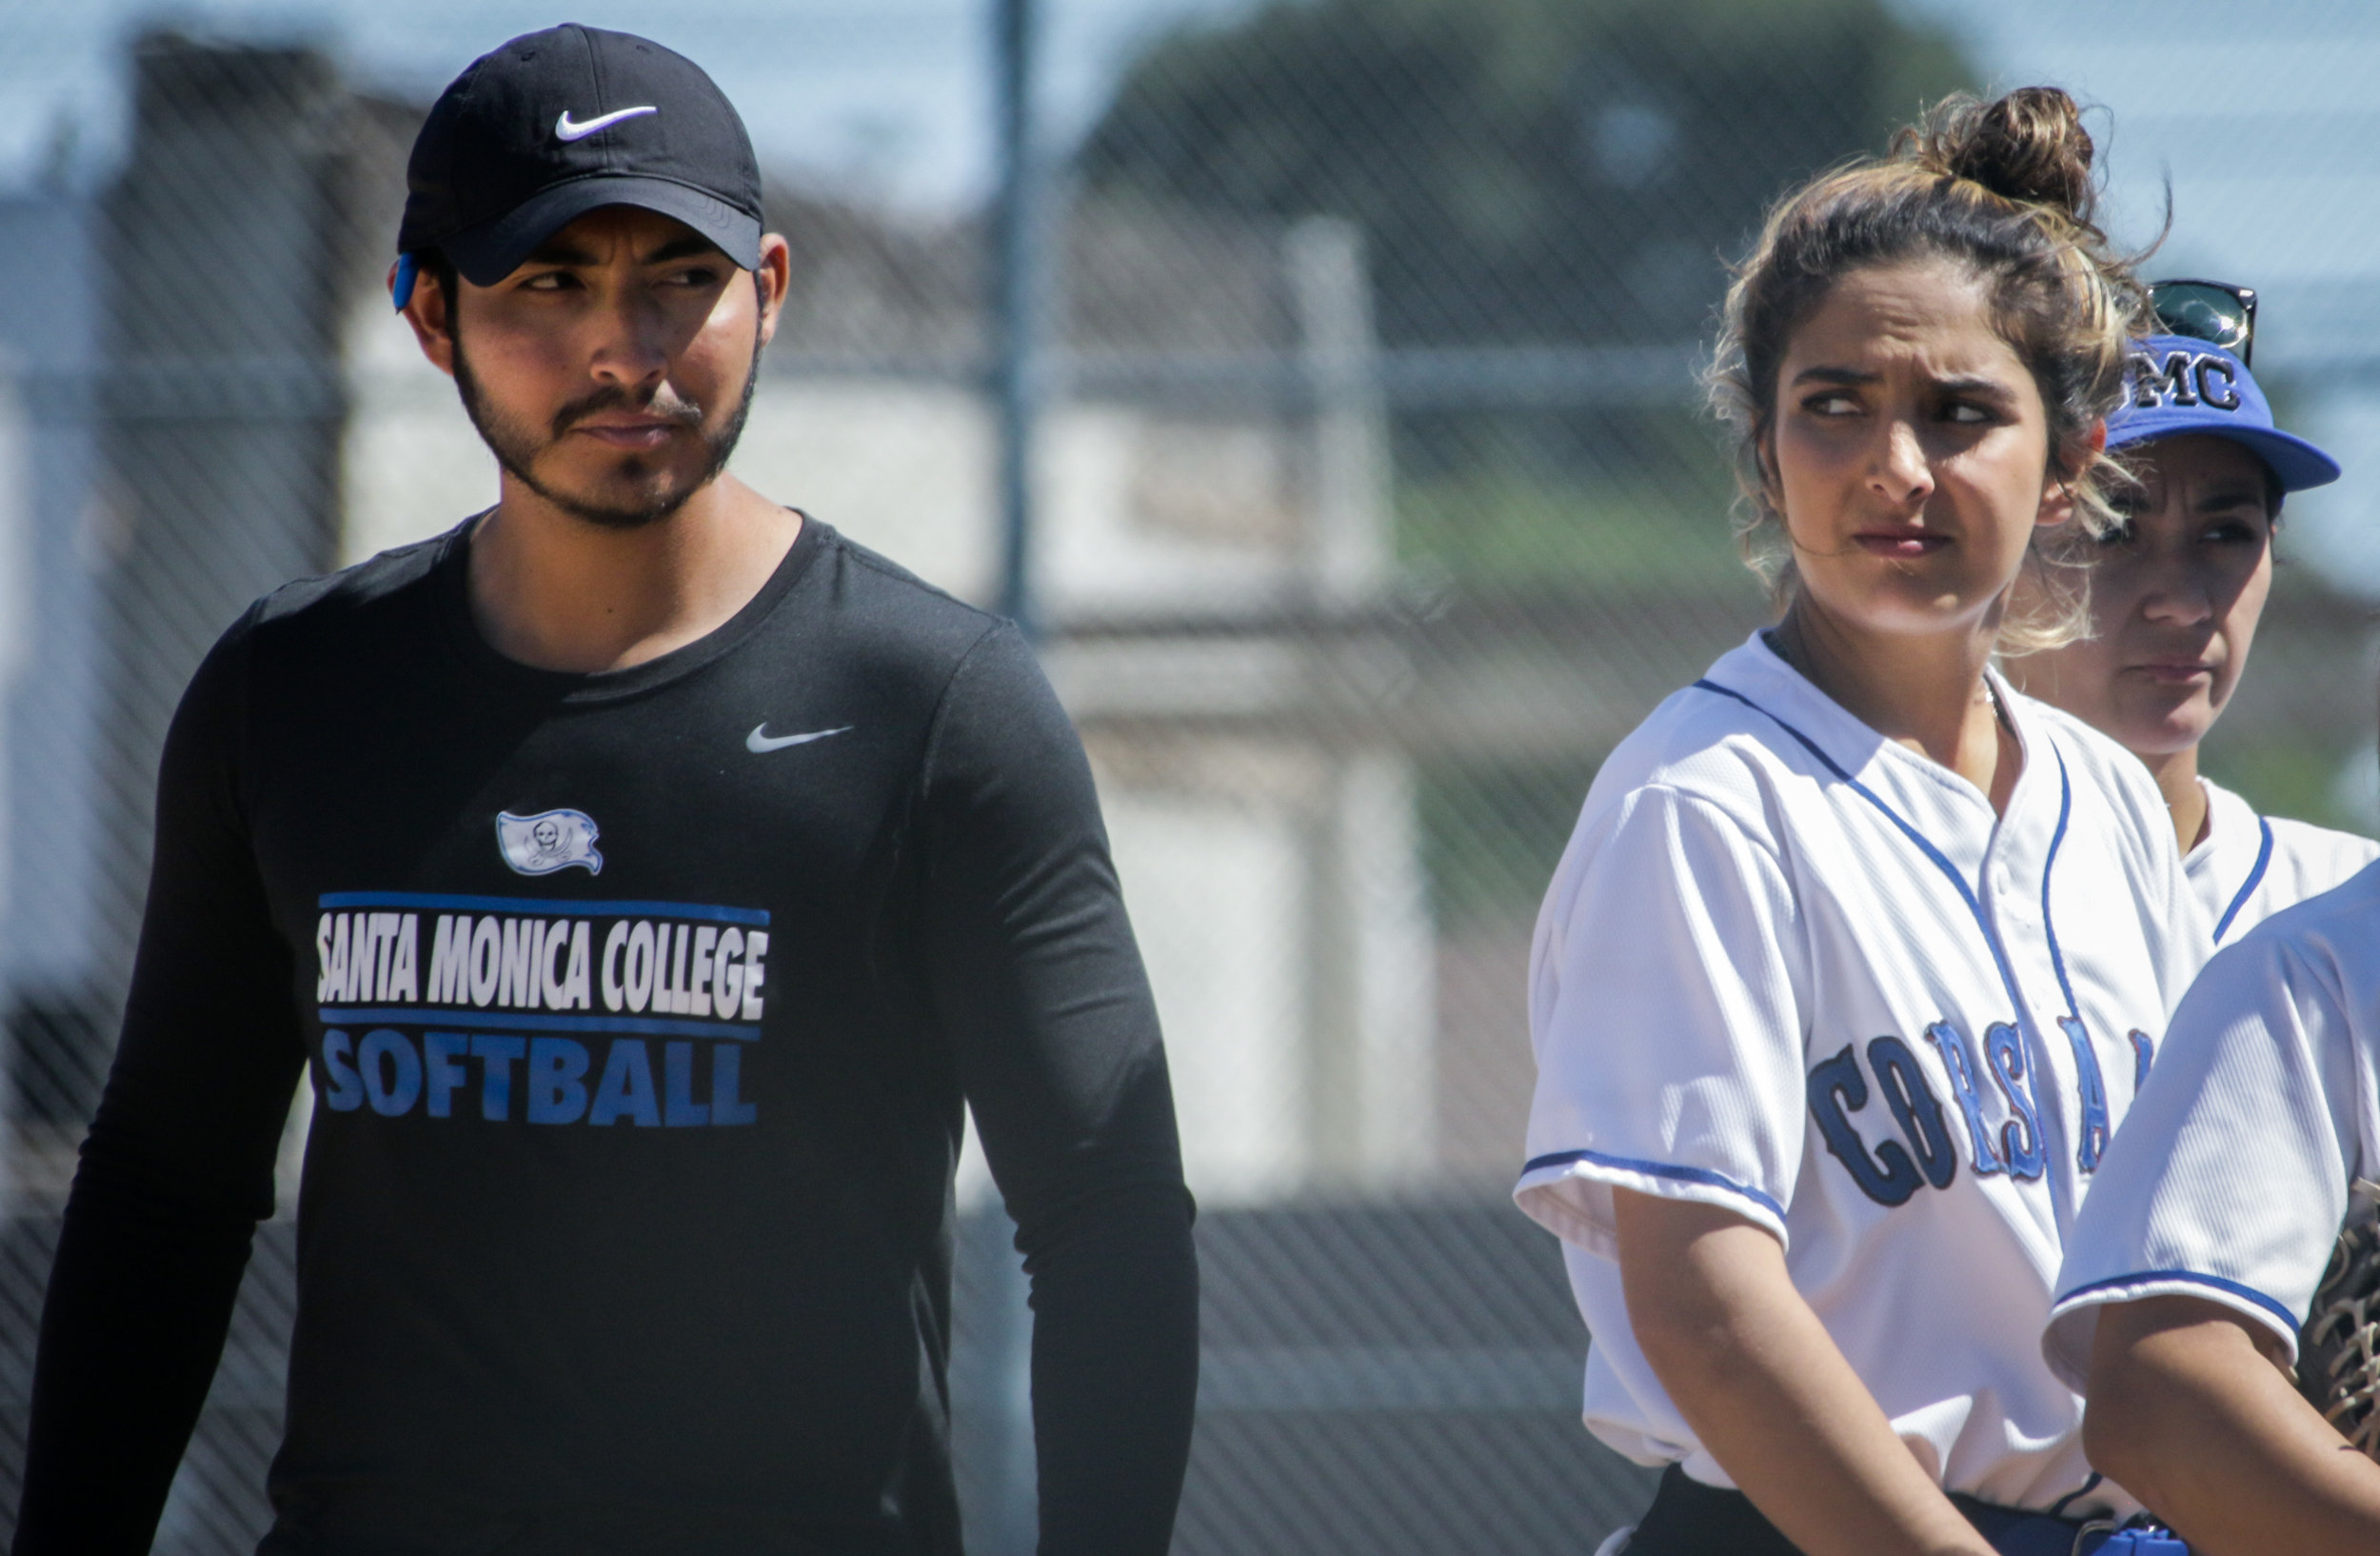 Santa Monica College Corsair softball head coach Phillip Gomez (Left), with Taylor Leibesman (Right) seen before their game against Allan Hancock College on Tuesday, March 27th, 2018. The game ended 8-1 in favor for Allan Hancock College. (Santa Monica, California, Tuesday March  27, 2018.) (Corsair/Ashutosh  Bikram Singh)